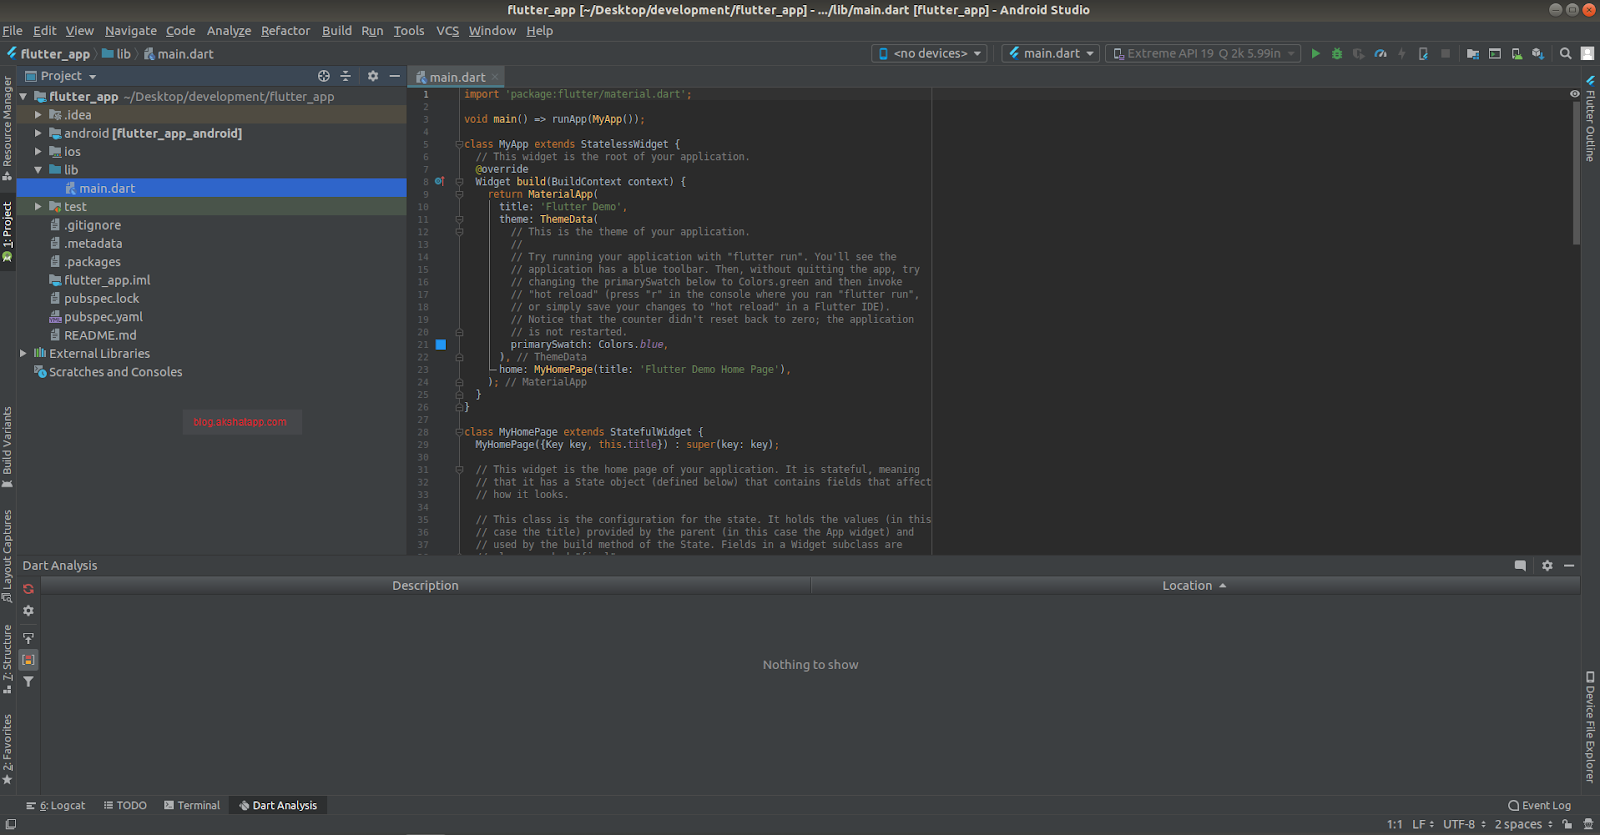 Android Studio - Flutter App Android